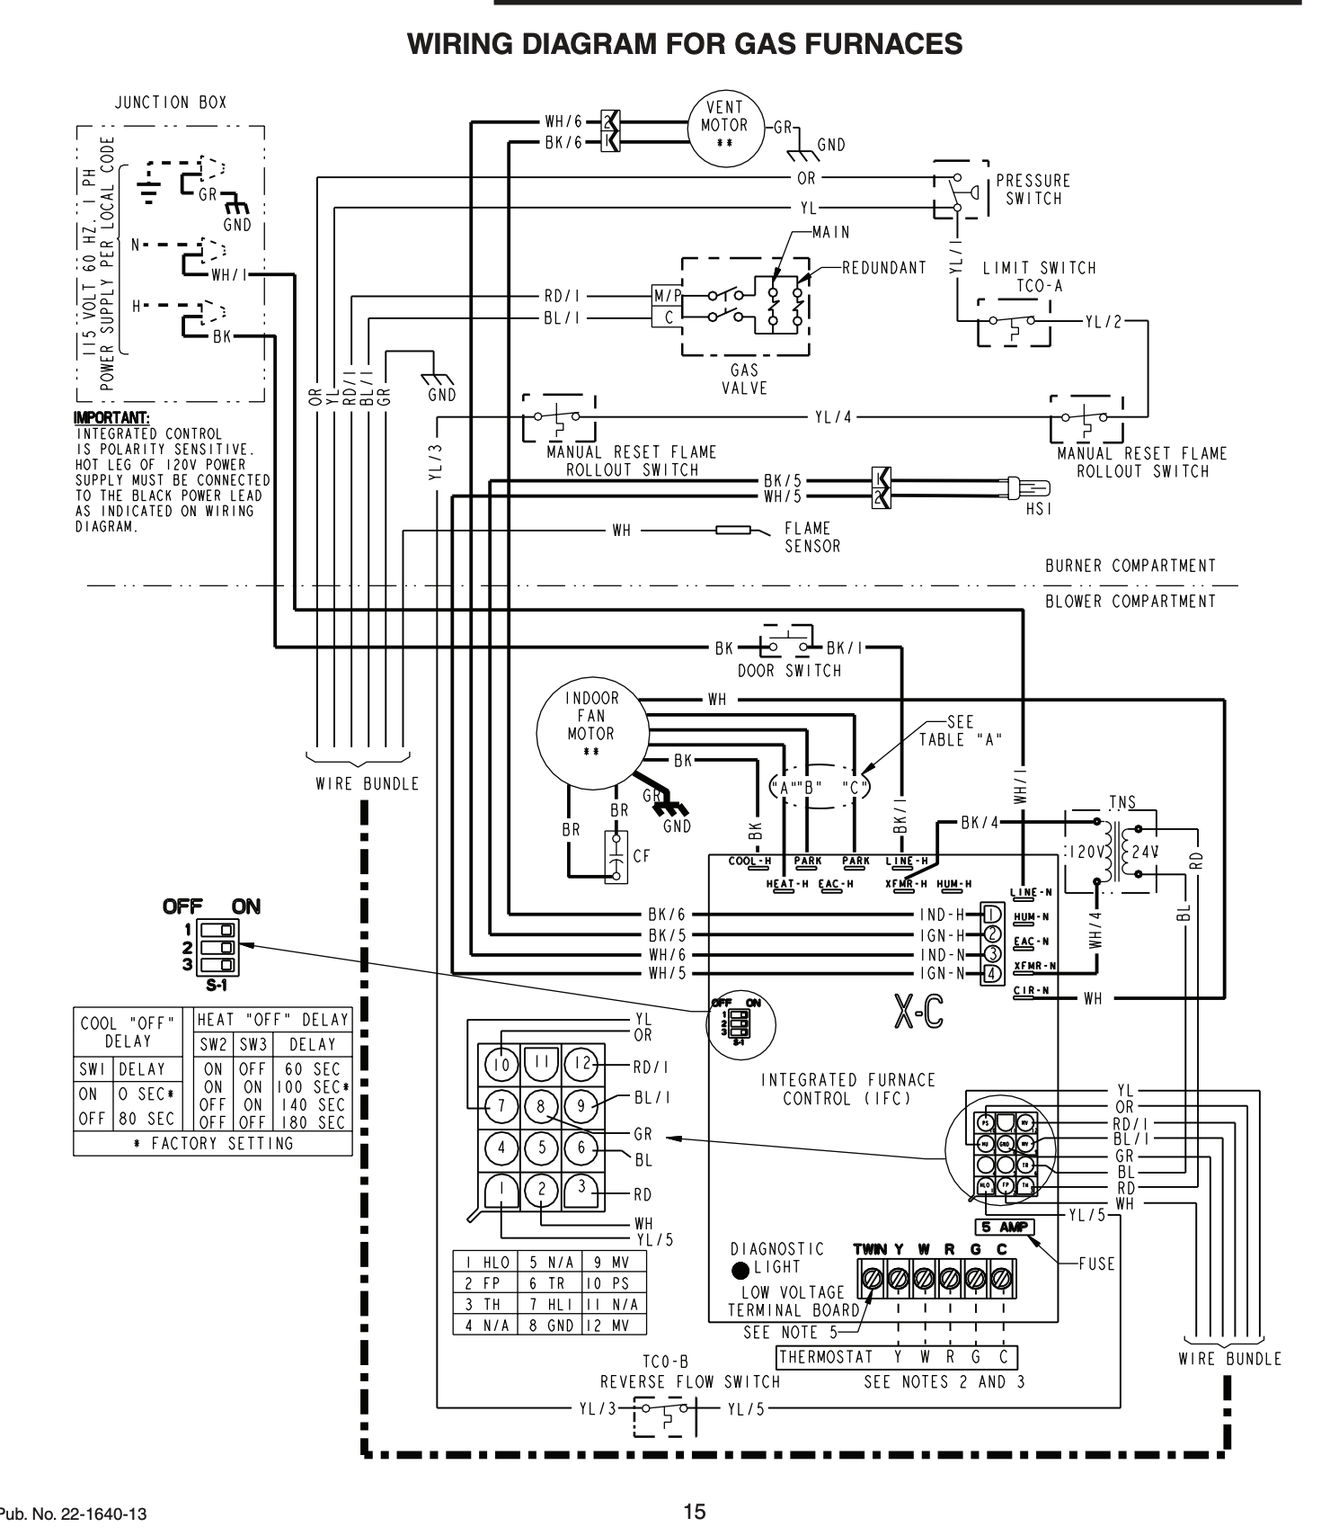 Fan & Limit Switch Q&A-5 Furnace fan limit control troubleshooting | Hvac Fan Wiring Diagram |  | InspectAPedia.com